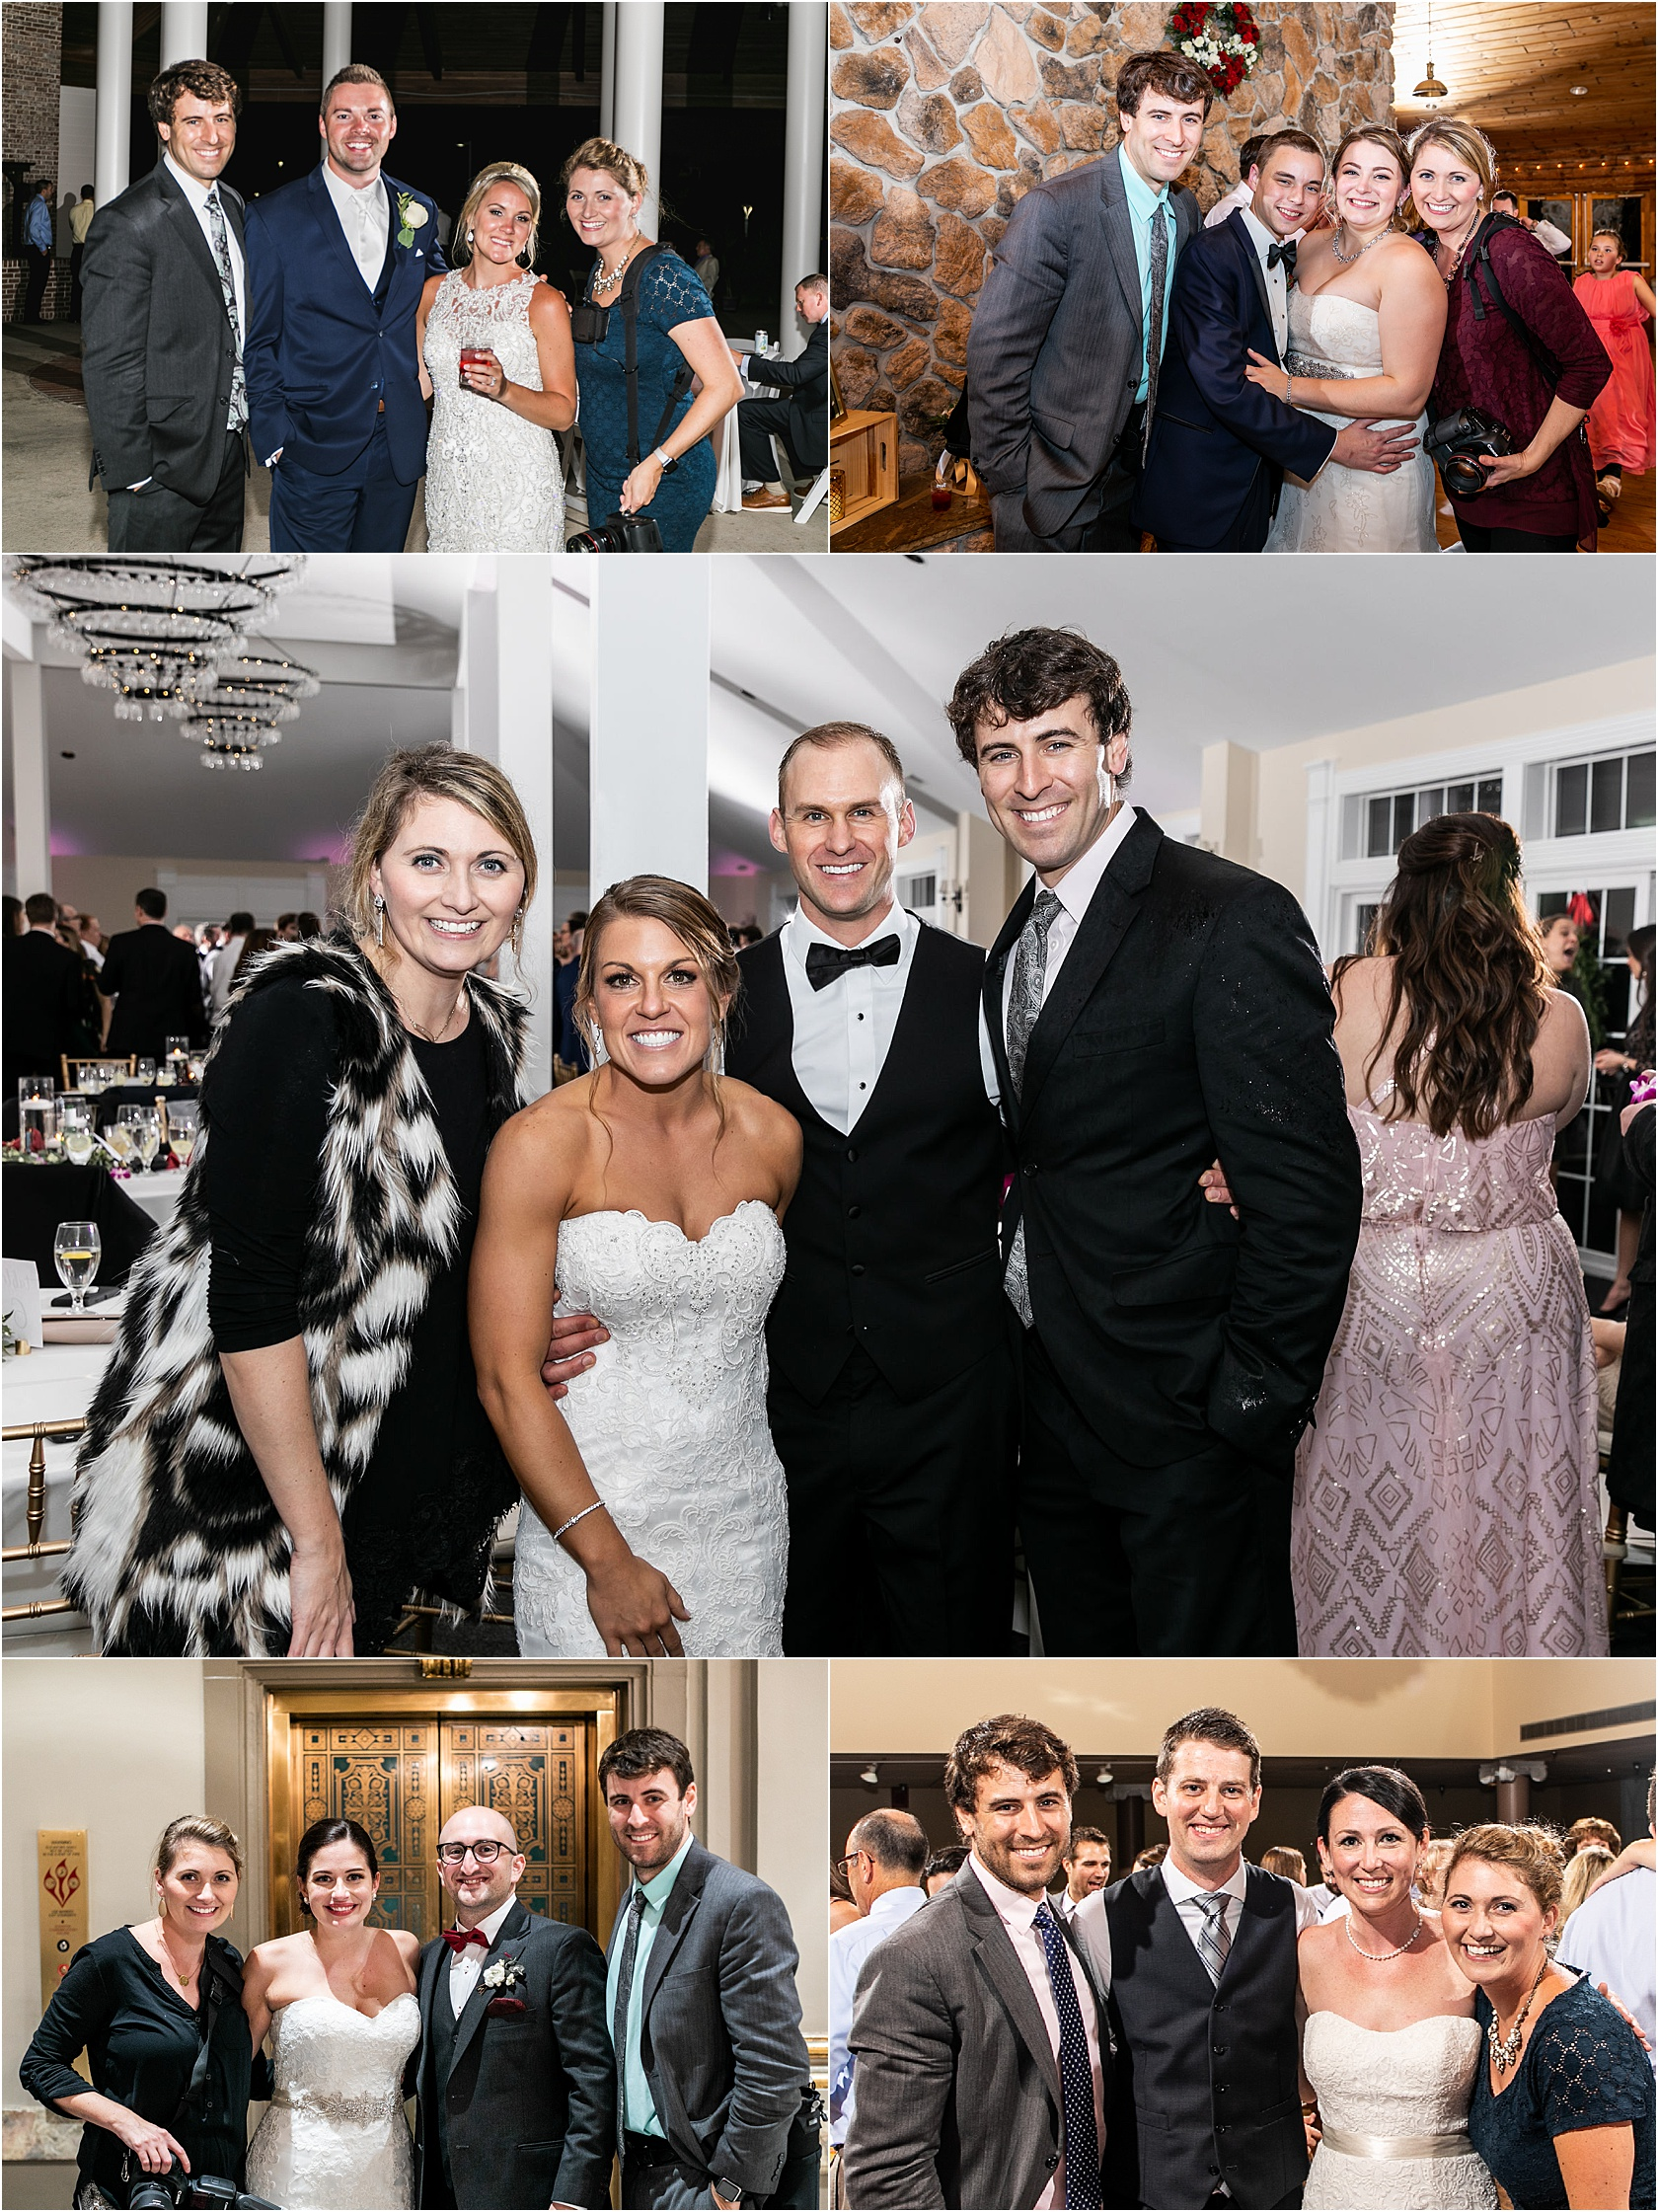 Our goal at the end of every wedding is to take a photo with our couple. How gorgeous are our people? These are just some of them!